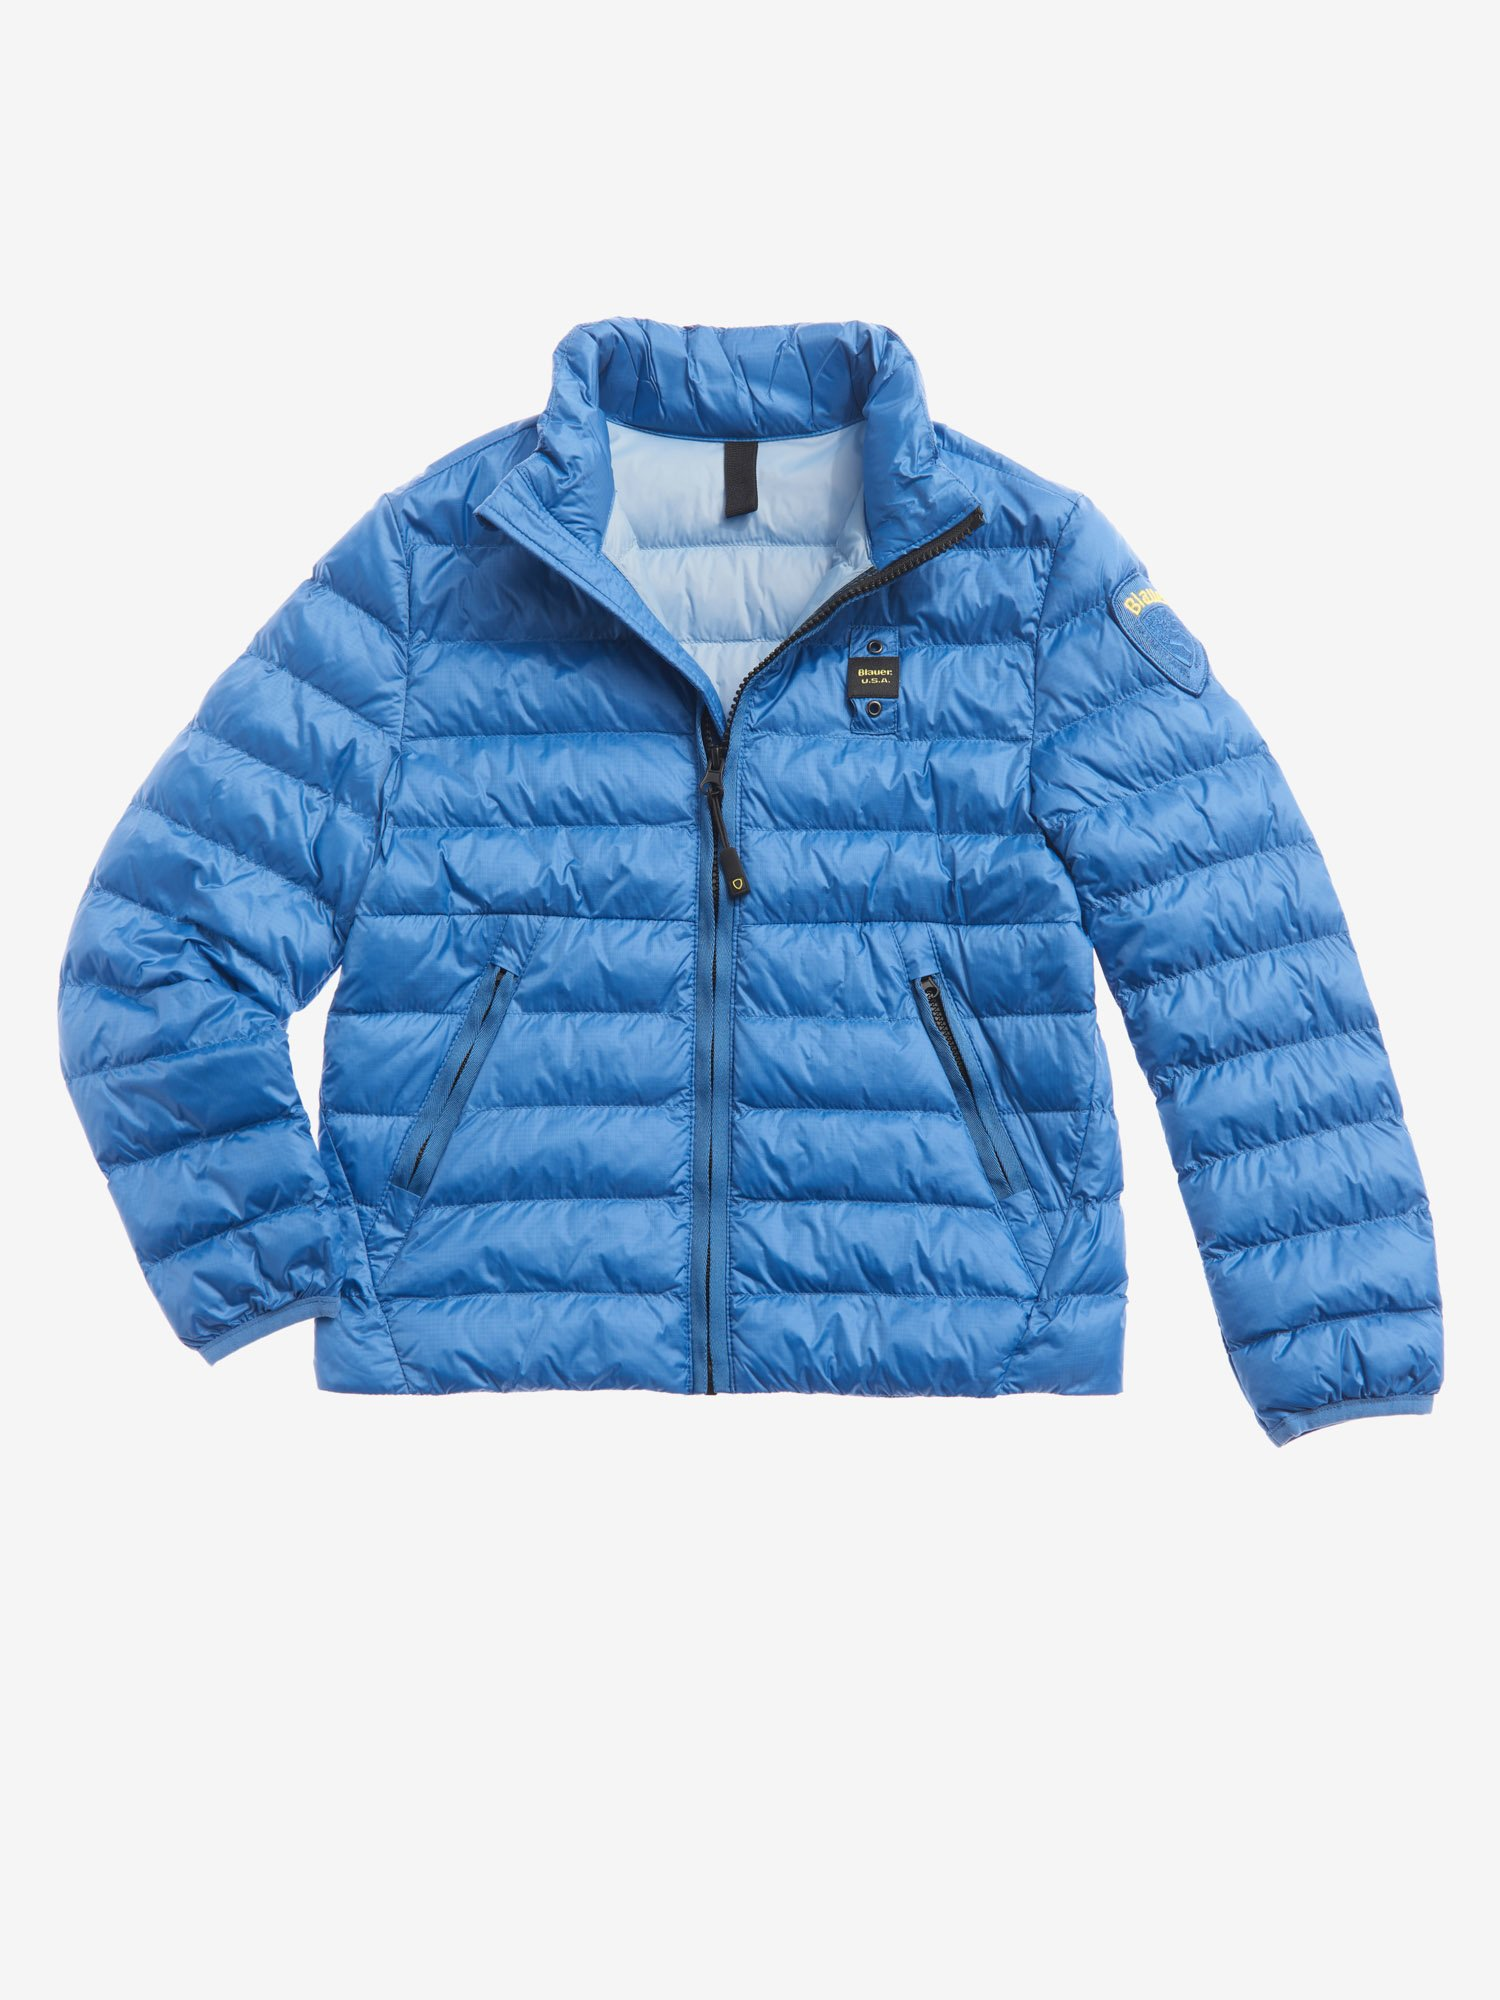 LEO DOWN JACKET WITH LIGHTWEIGHT ECO PADDING - Blauer